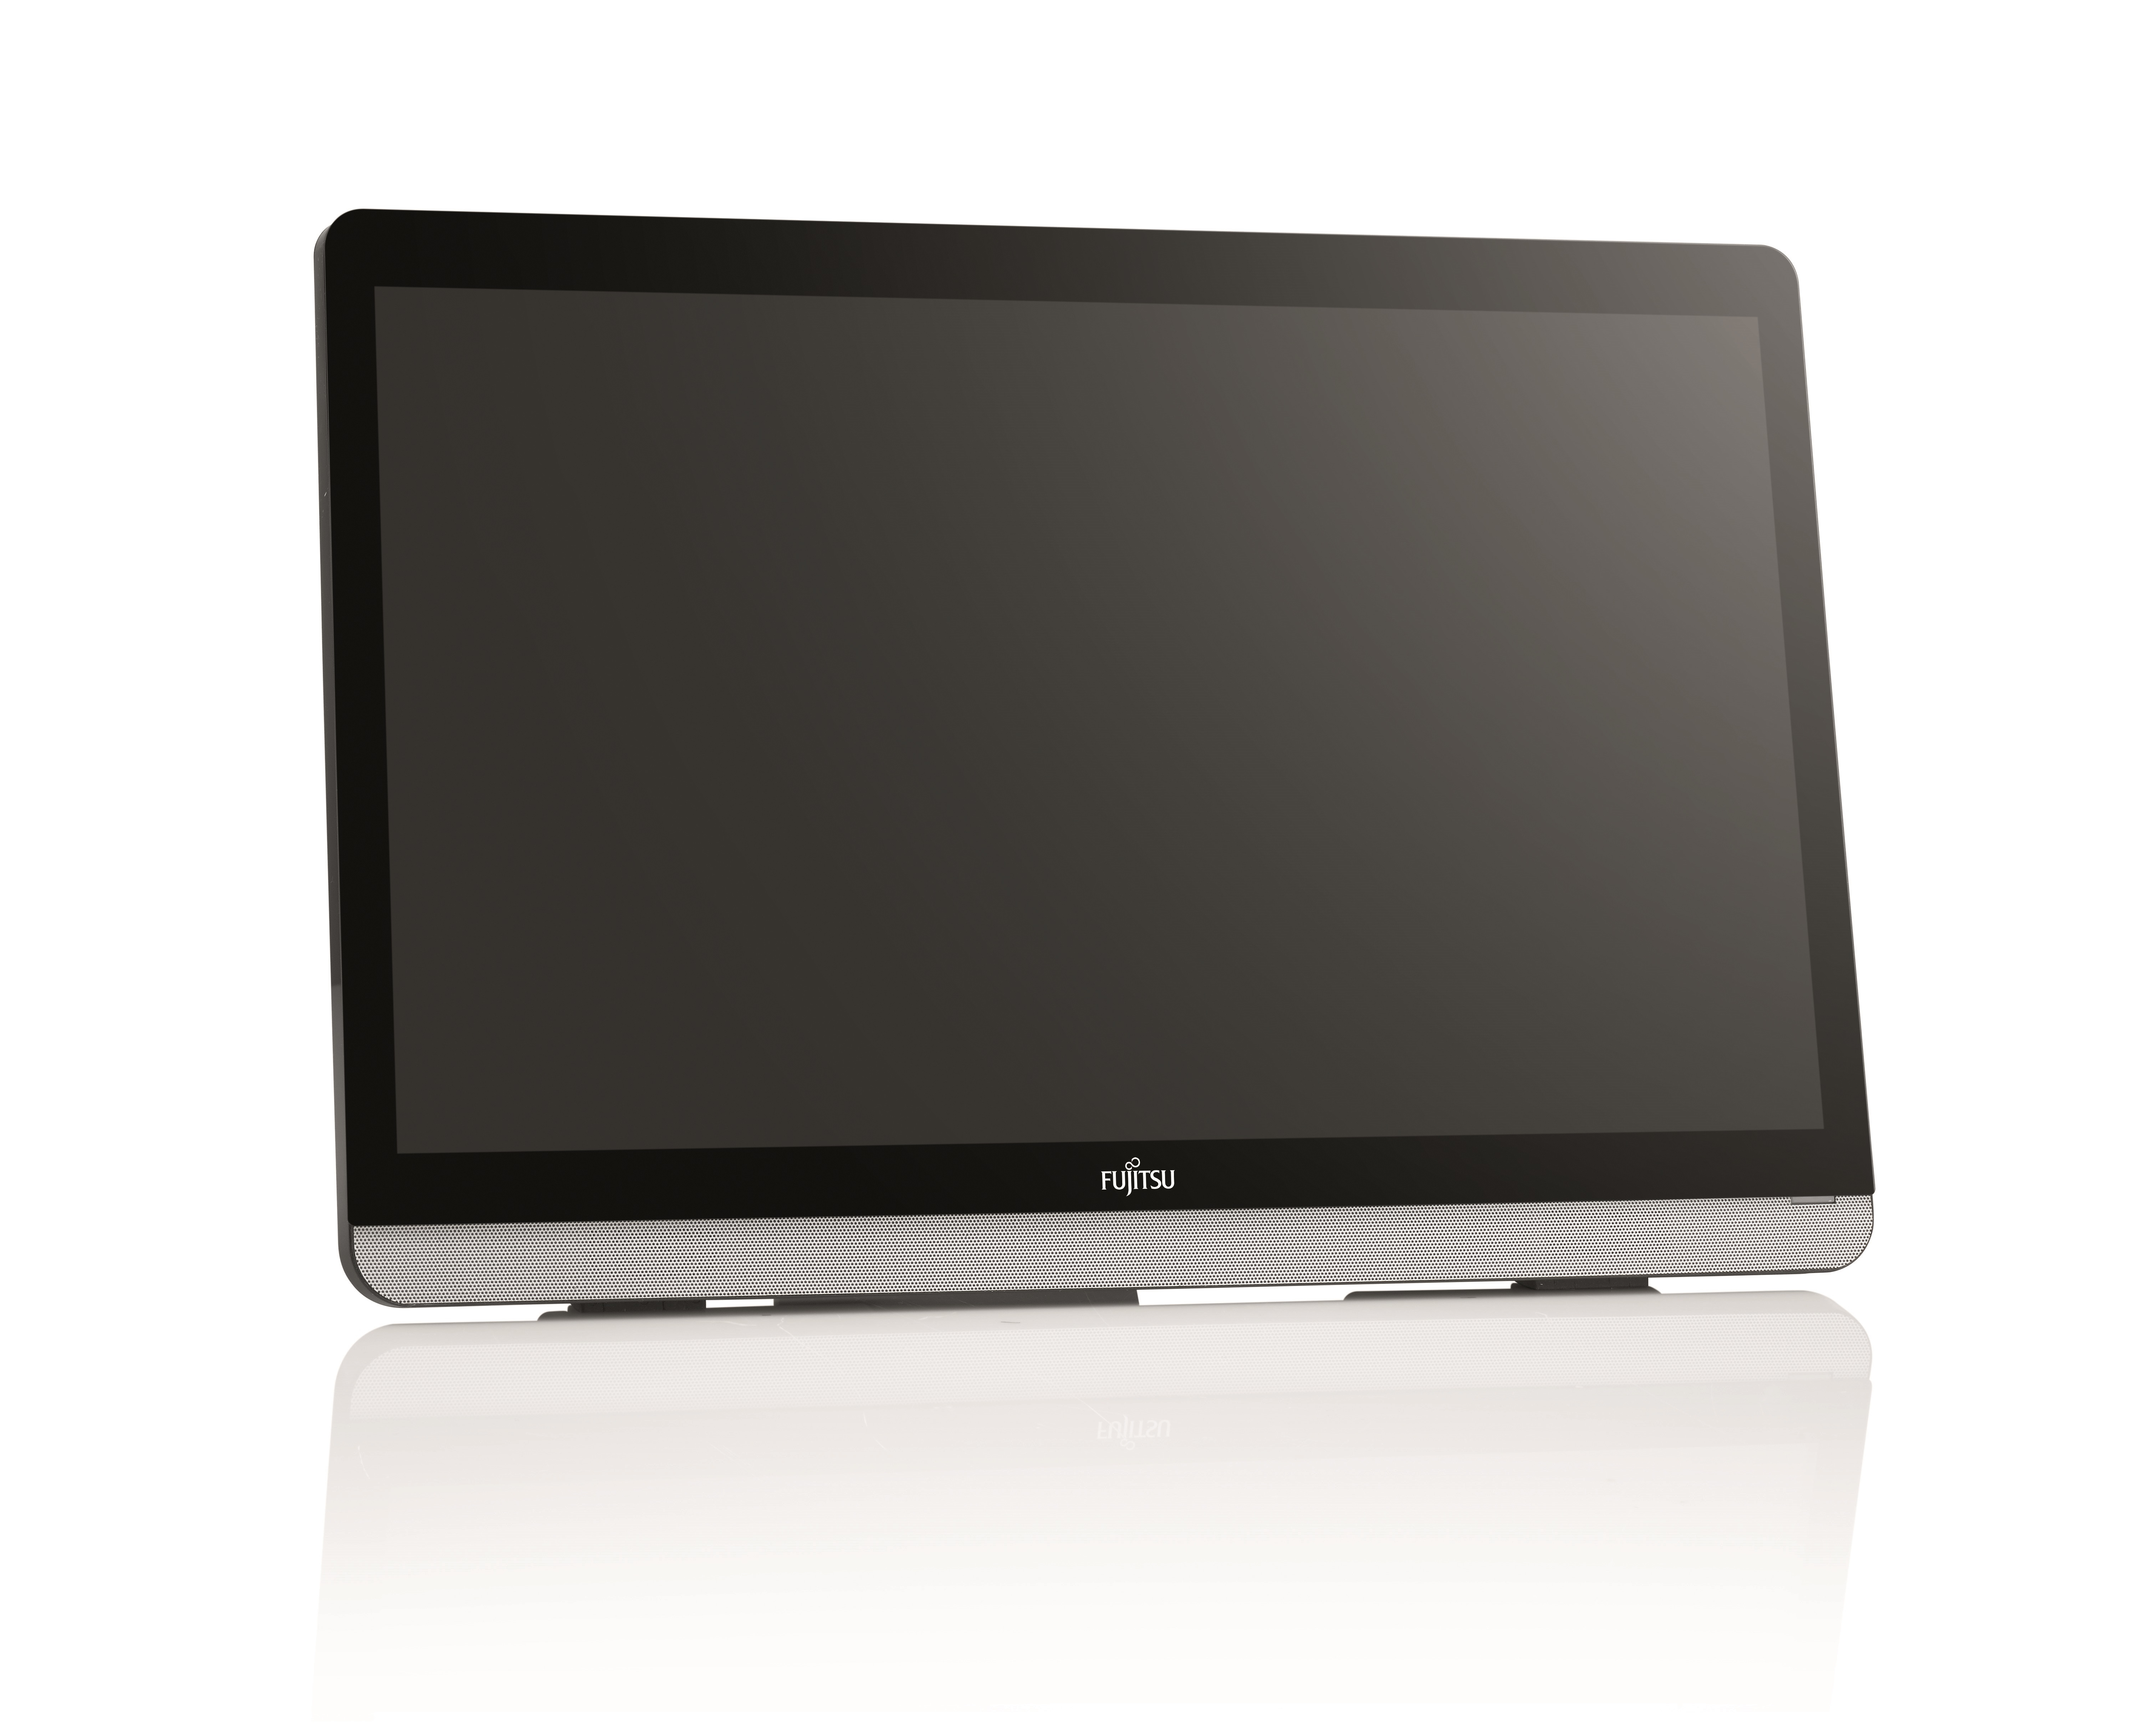 FUJITSU Display E22 Touch 54,6cm 21,5Zoll 1000:1 7ms 178/178 CR 240cd/m2 16:9 1920 x 1080 blackAnti-Glare 10-finger PCT touch